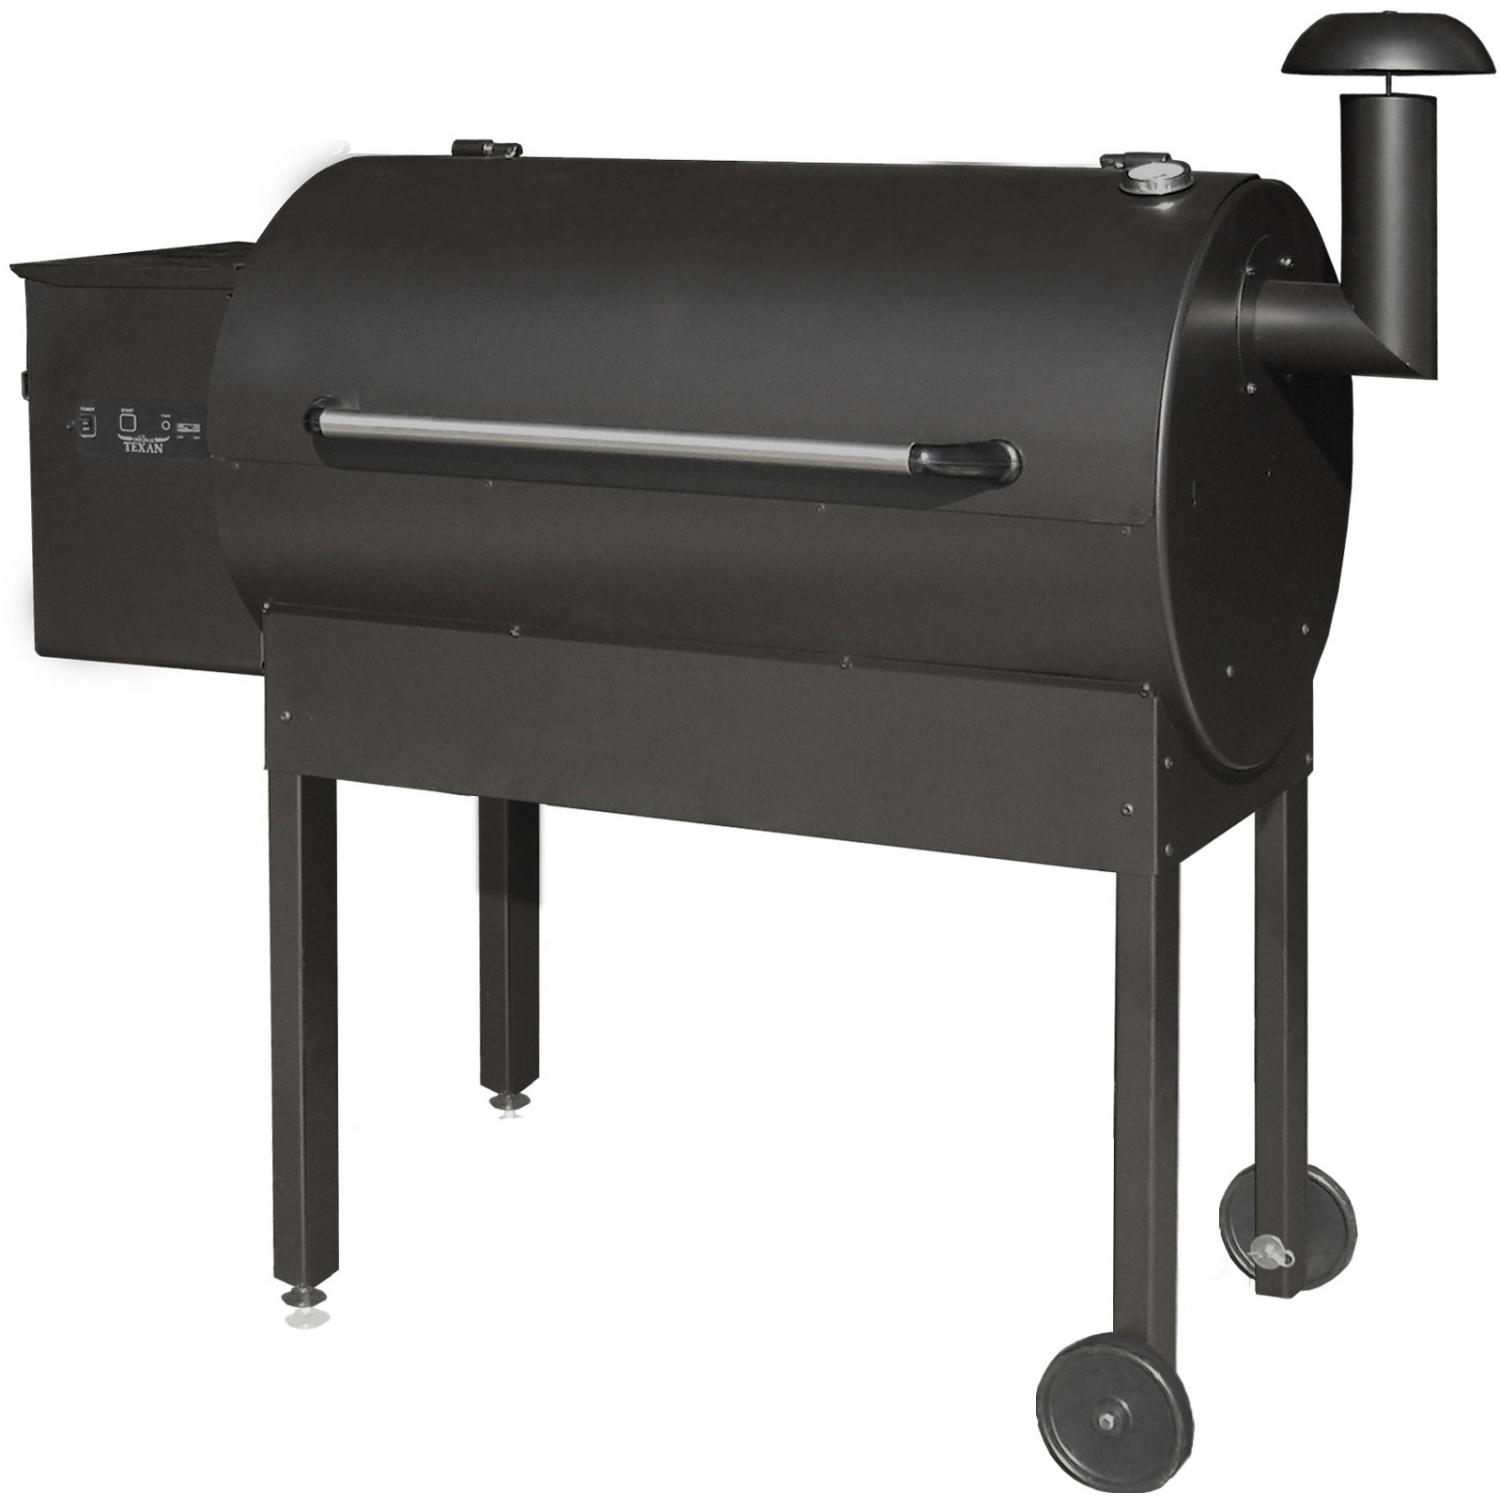 The Original Texan OT650 Wood Pellet Smoker Grill